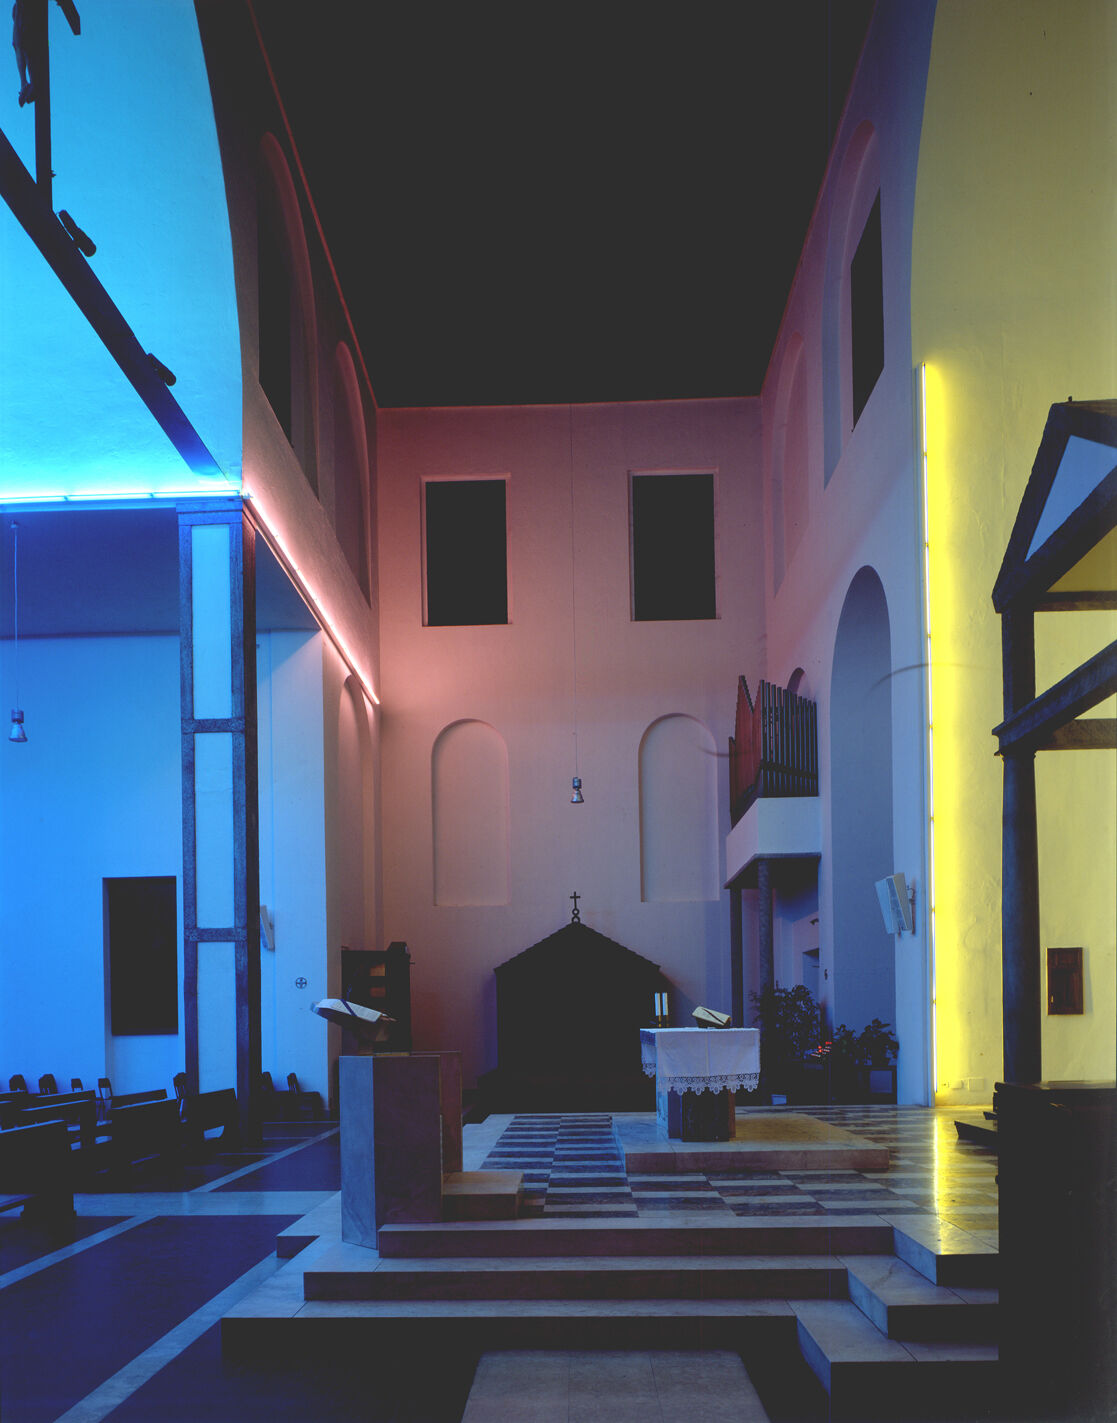 Installation view of Dan Flavin, Untitled, created in 1996 and posthumously realized in 1997, at Santa Maria in Chiesa Rossa, Milano. Photo by Paola Bobba. Courtesy of Fondazione Prada, Milano.